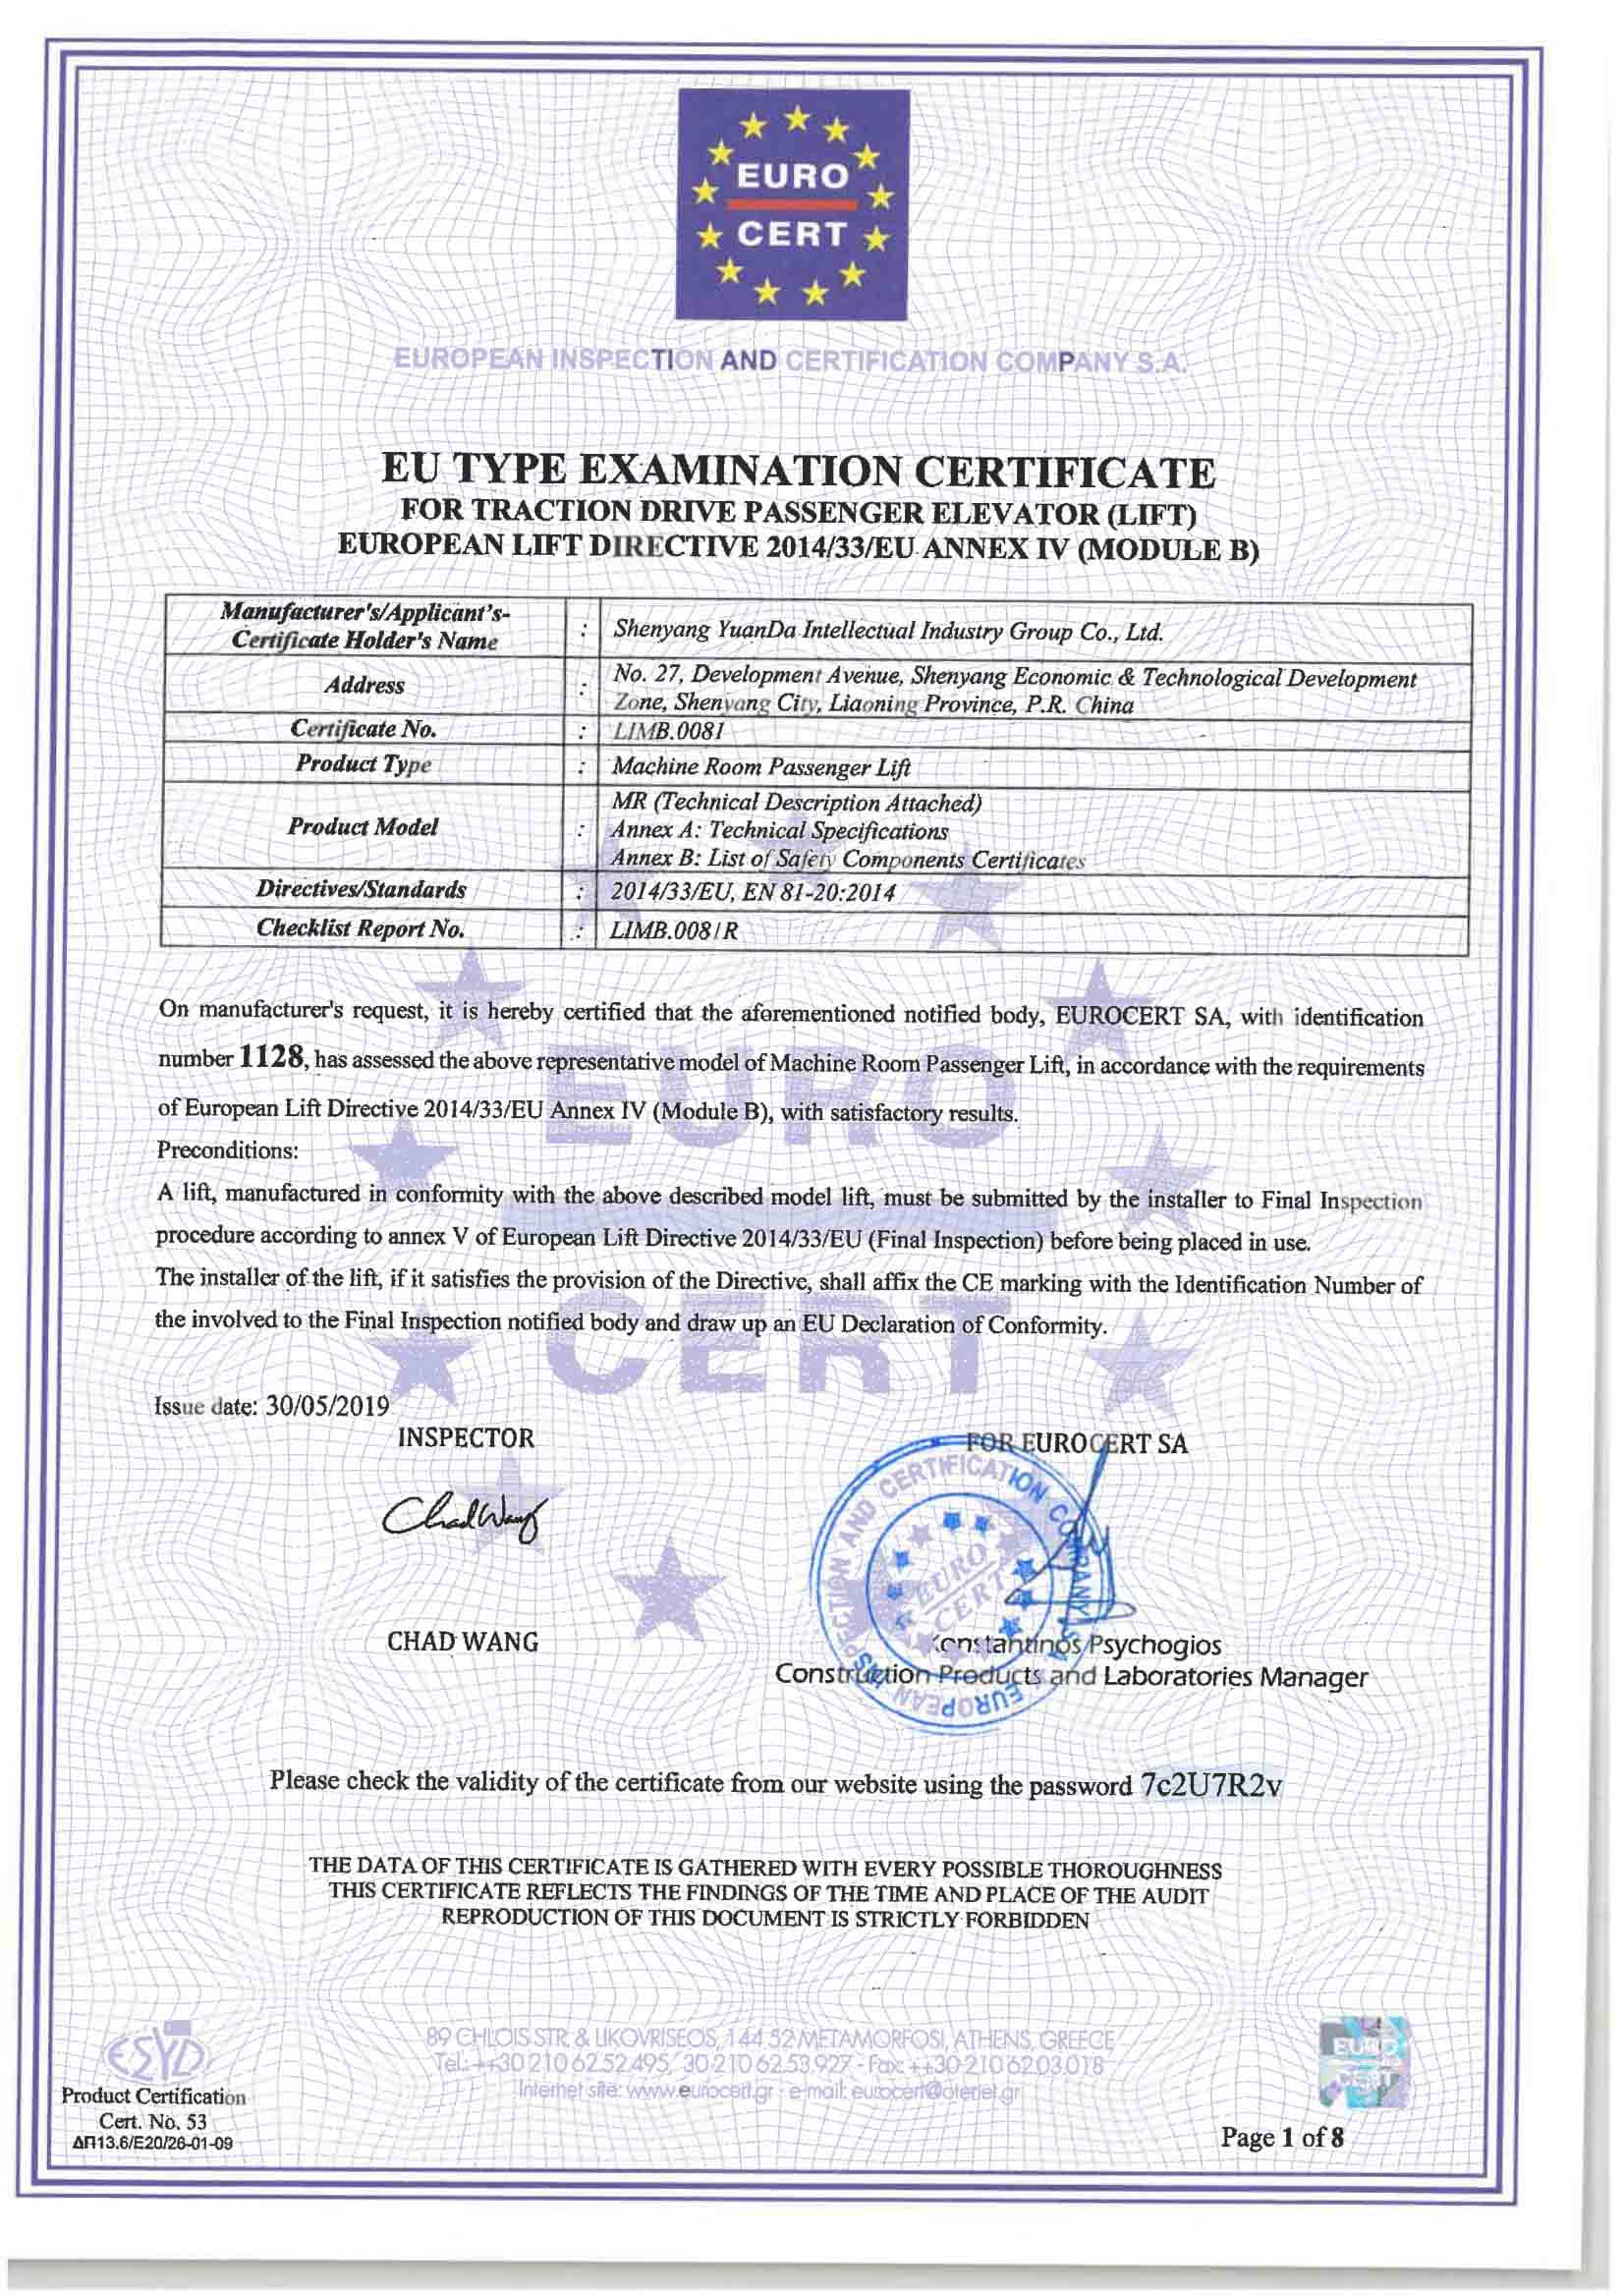 CERTIFICATE-MR-CE-1-small.jpg